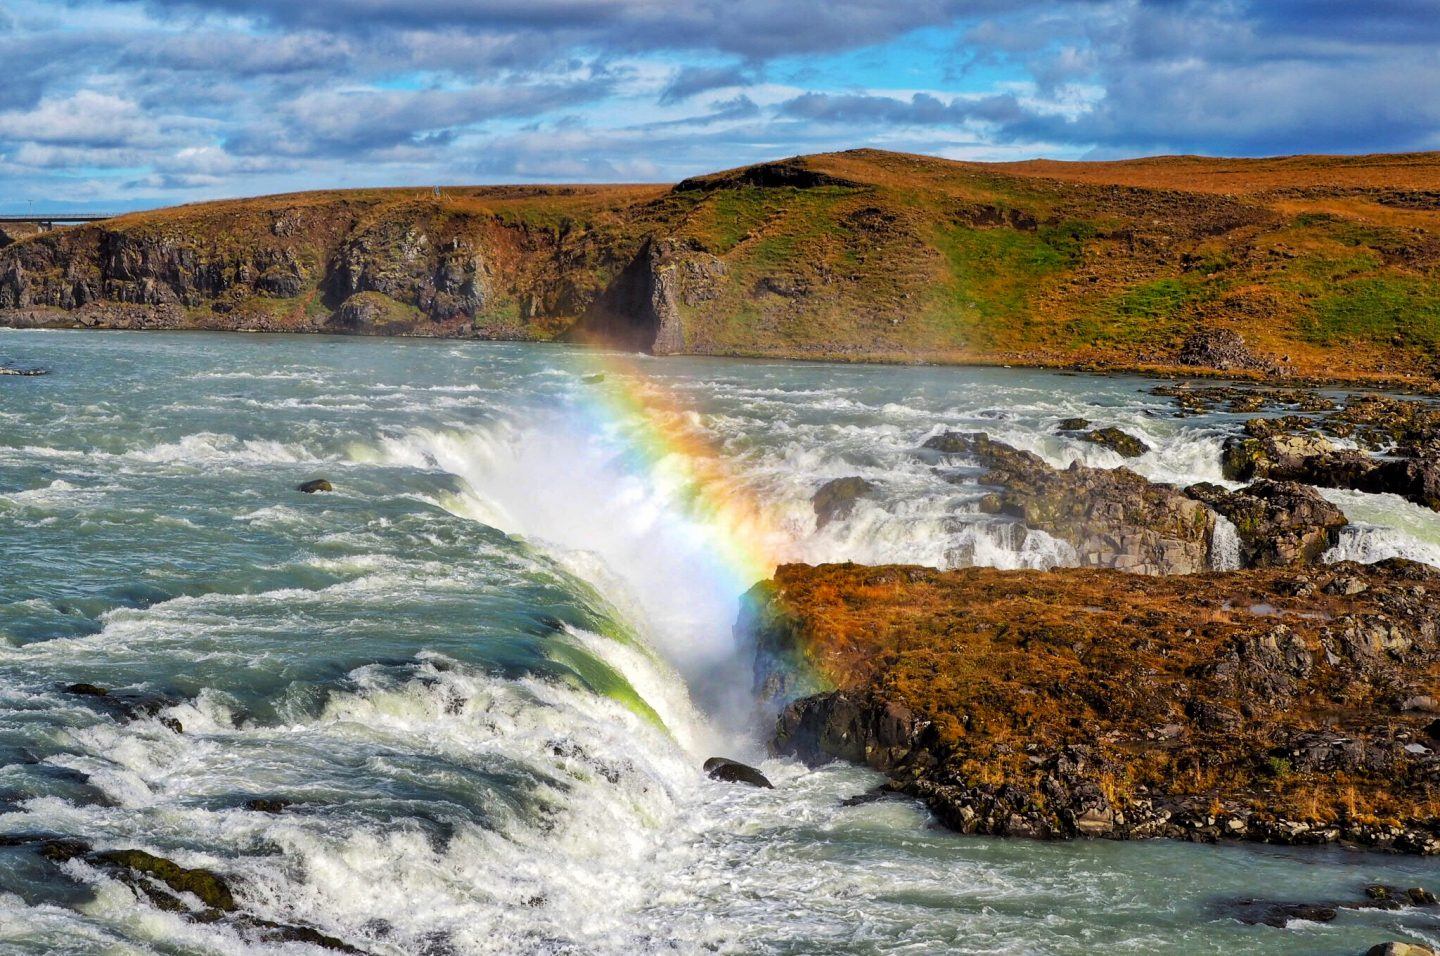 Rainbow-over-Urridafoss-Waterfall-Iceland